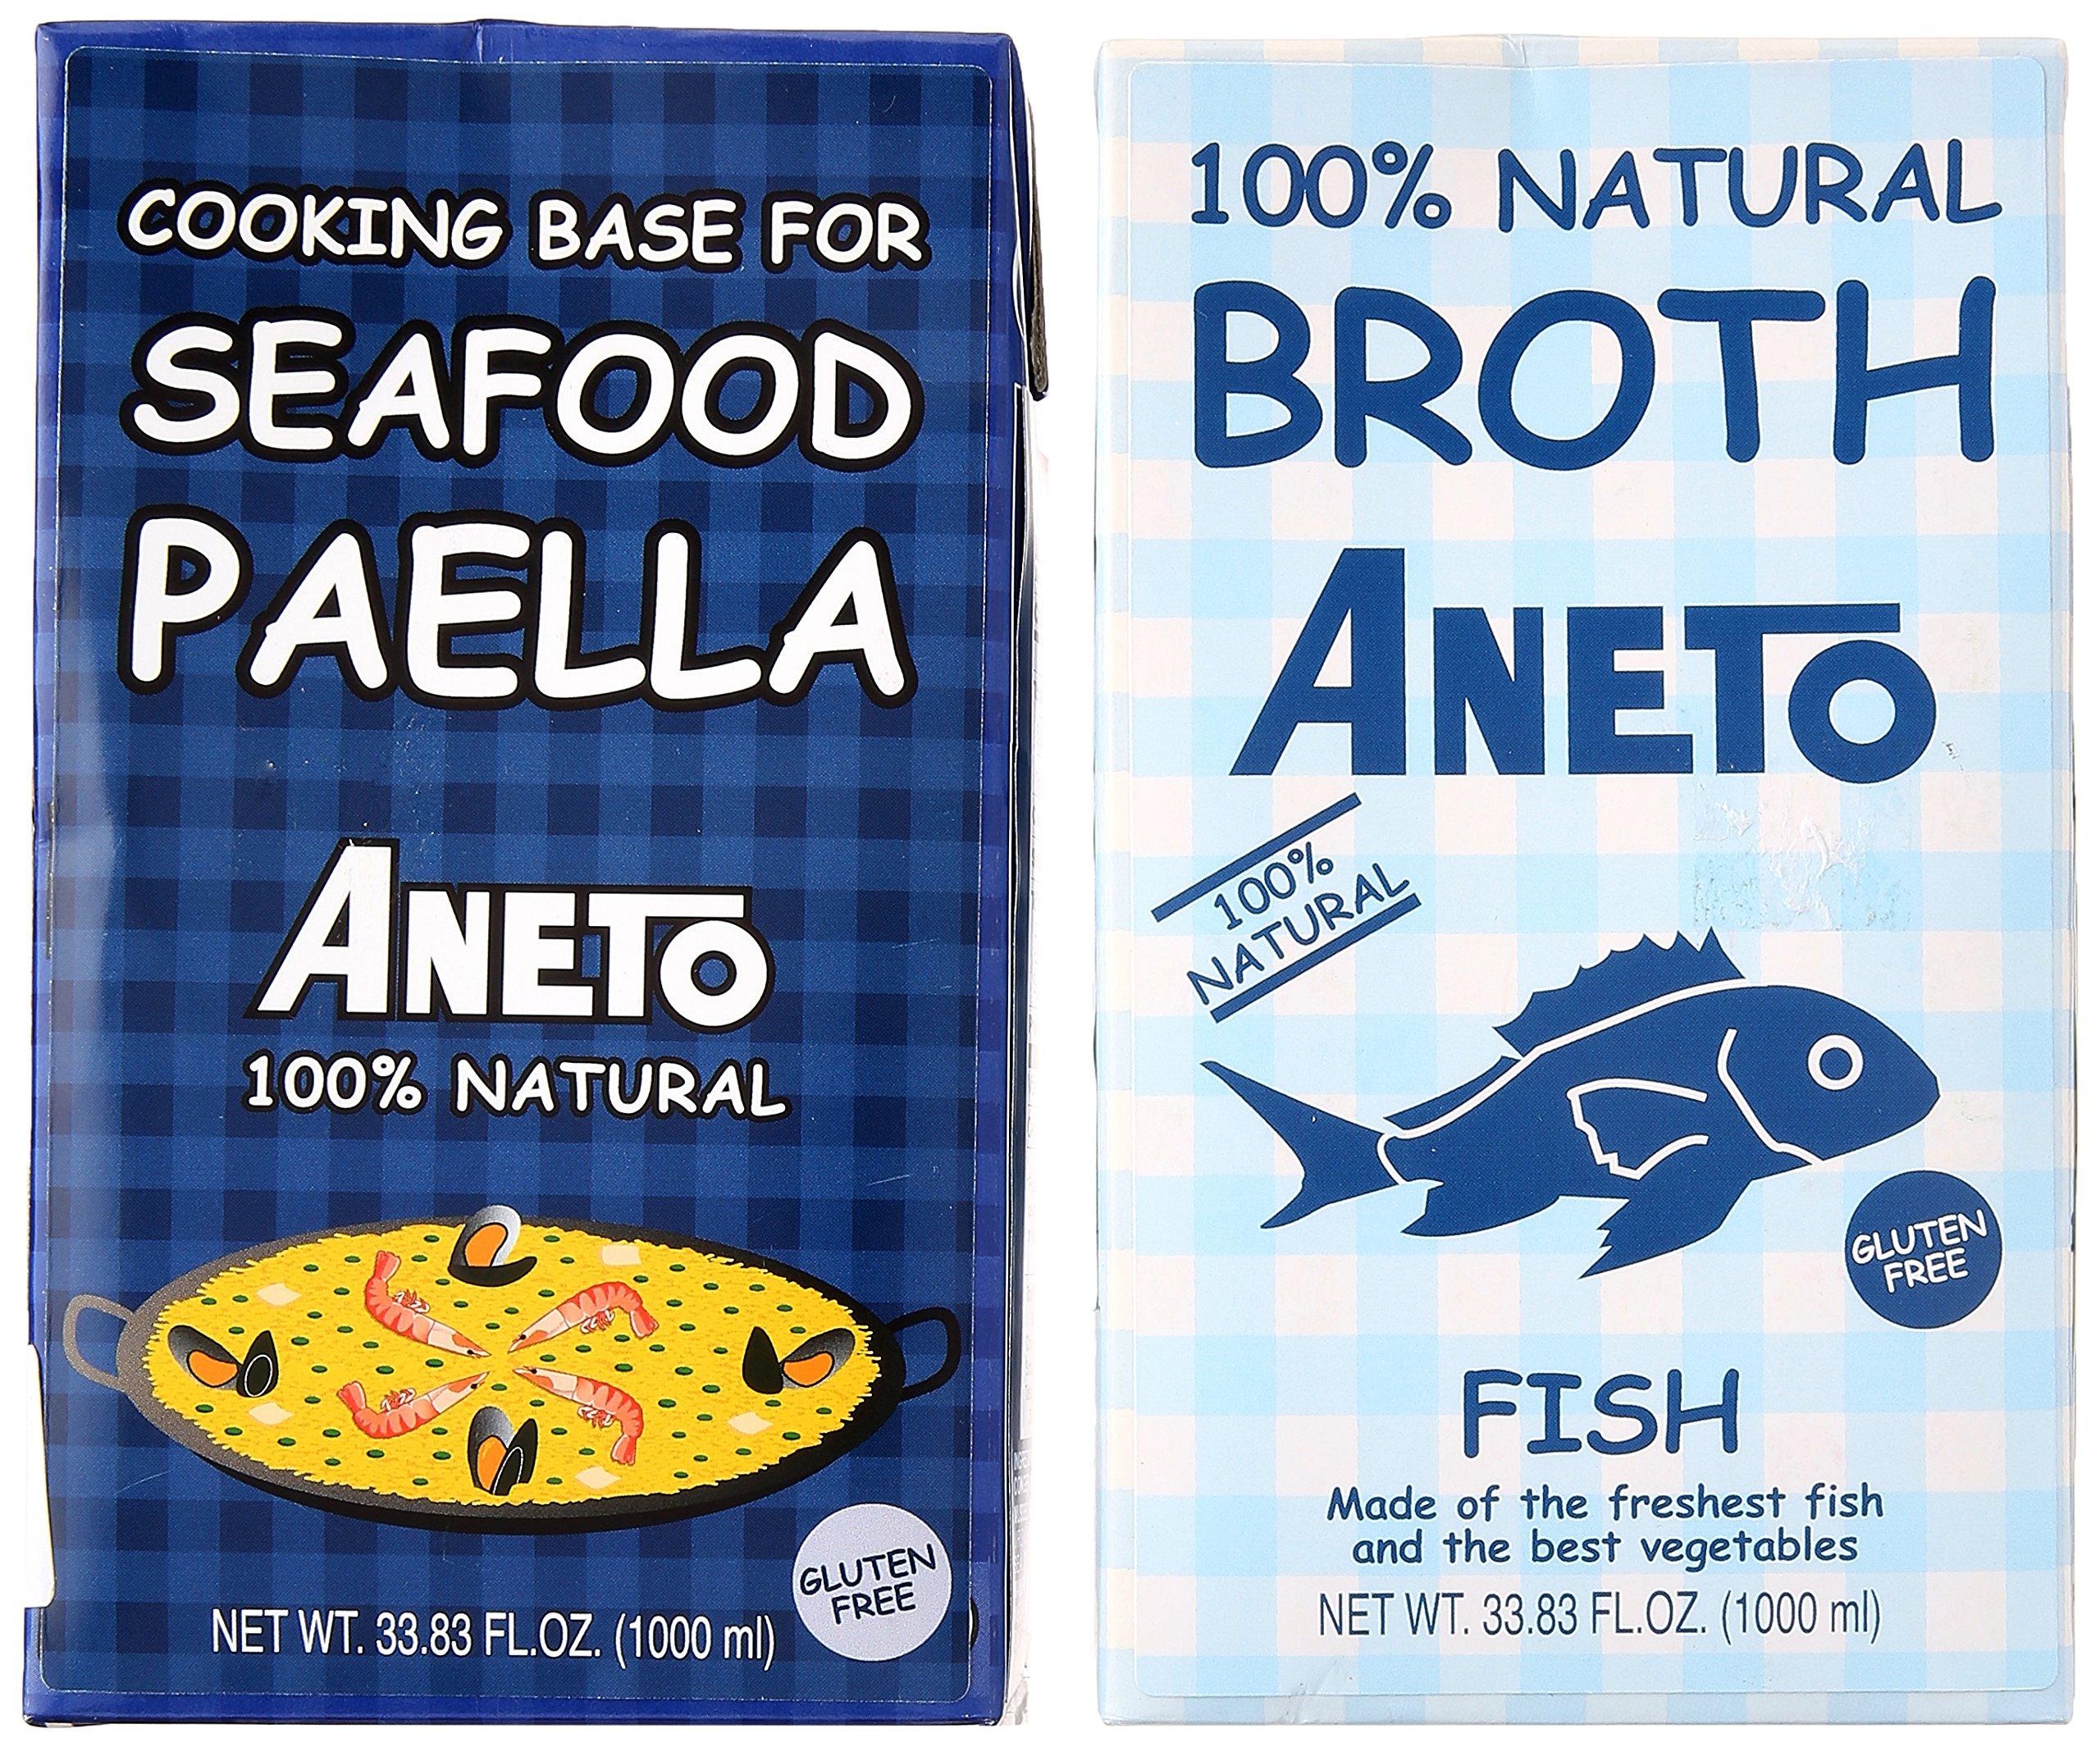 Delicias de Espana, Seafood and Fish Broth to use as a Paella base, total 2 liters